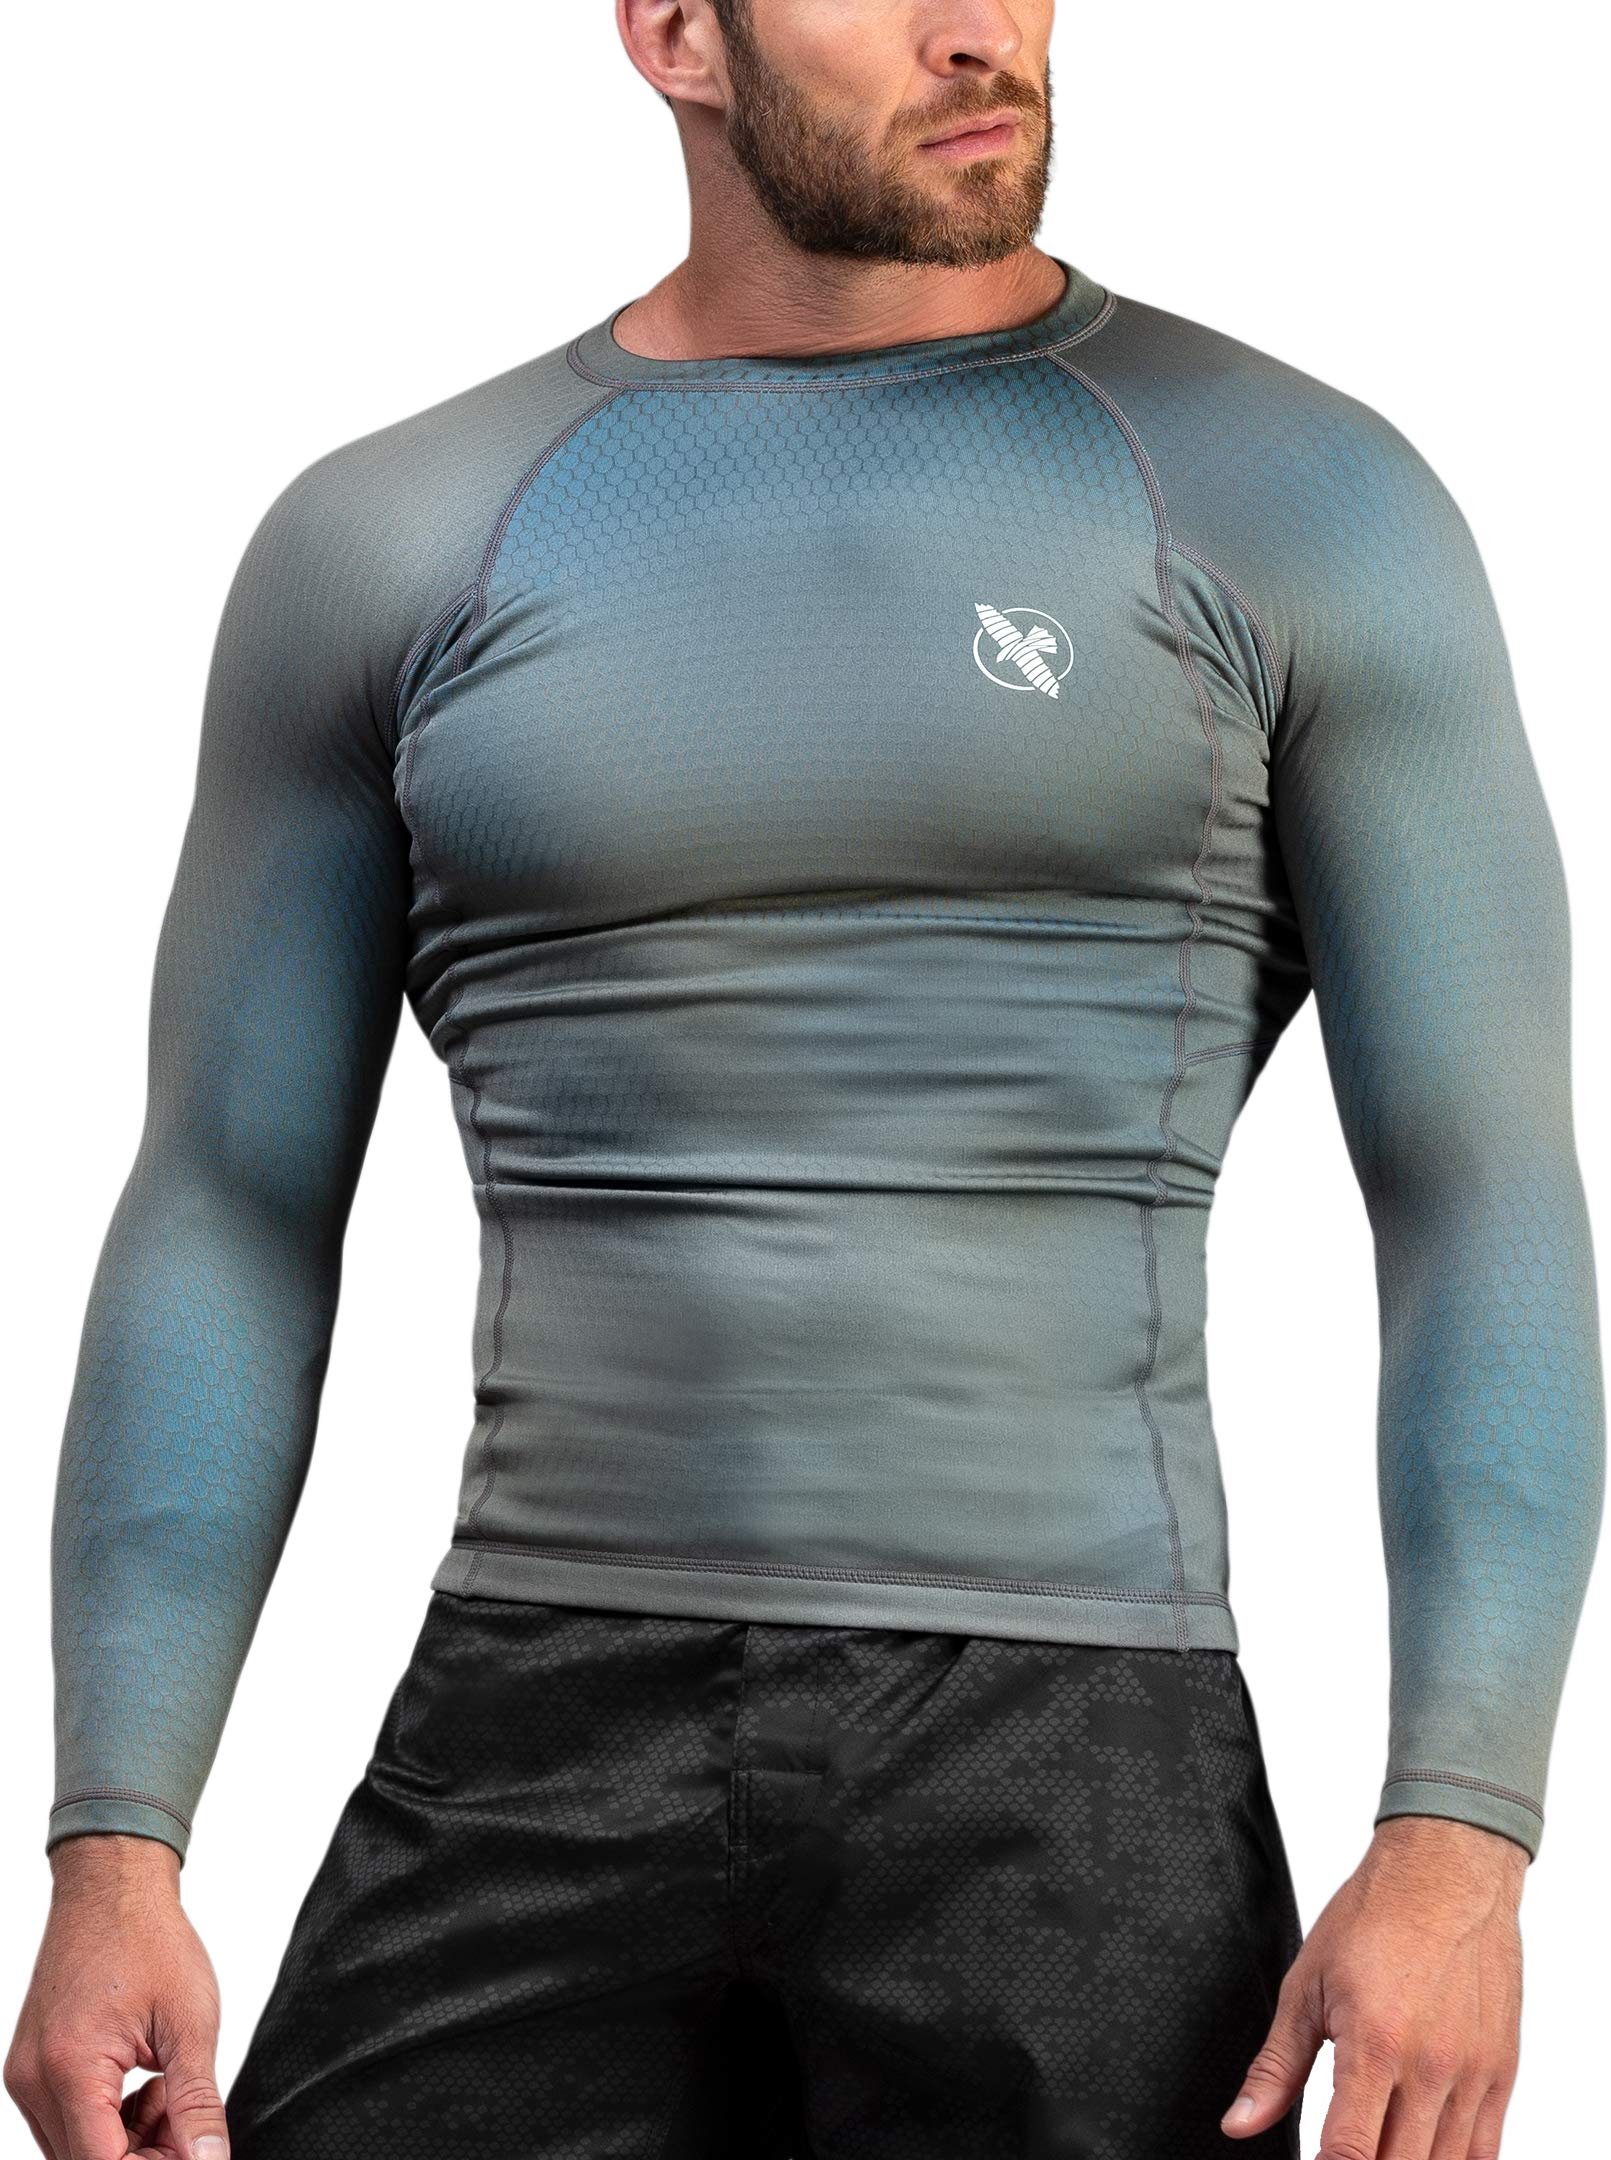 Hayabusa | Men's Fusion Long Sleeve BJJ Rash Guard | Grey/Aqua | XXL by Hayabusa